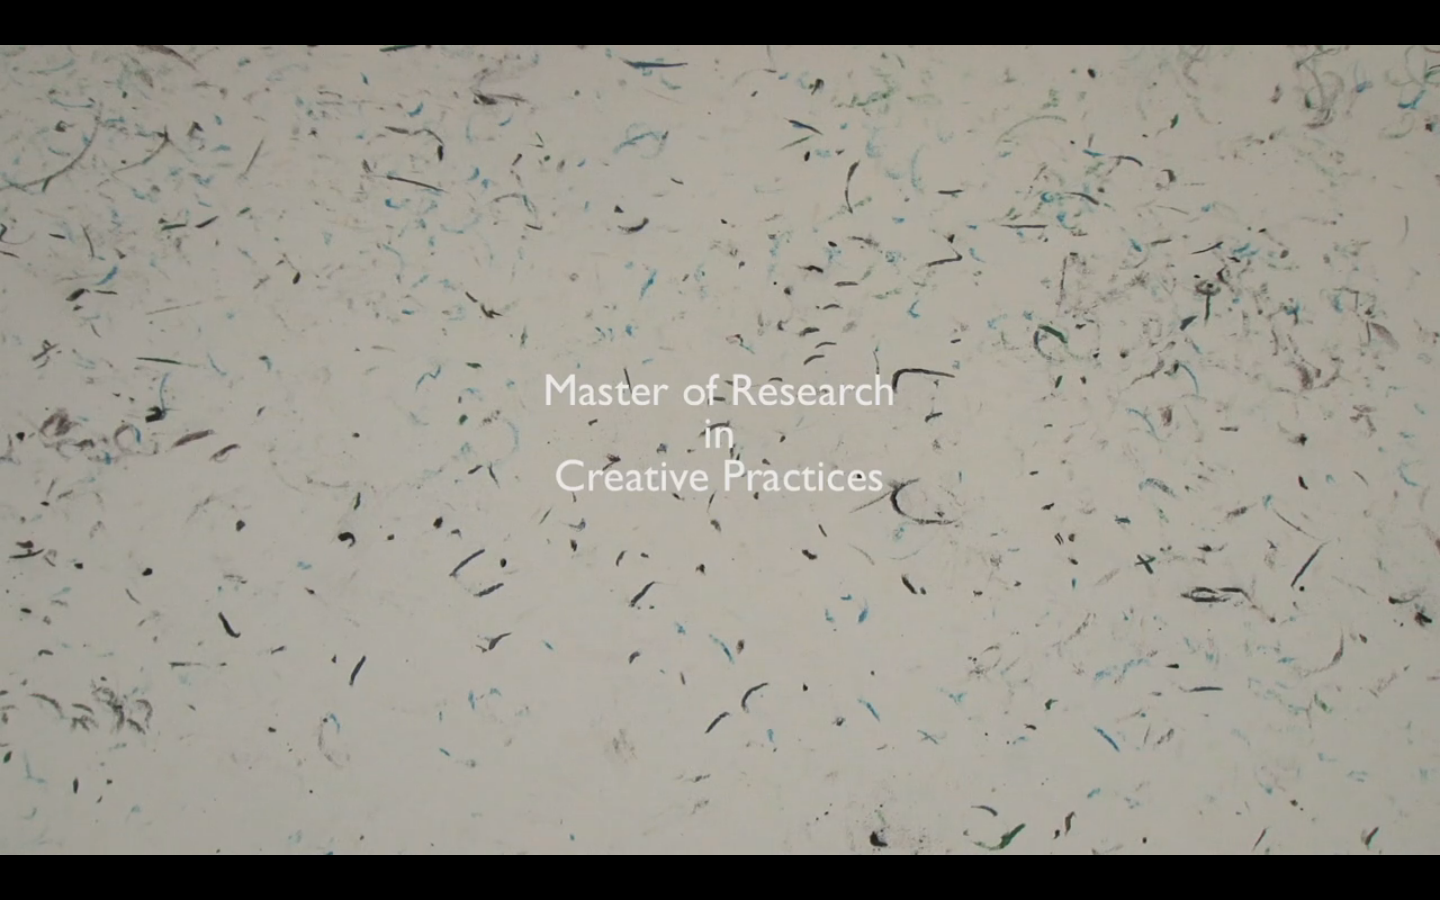 Mres Creative Practices Video